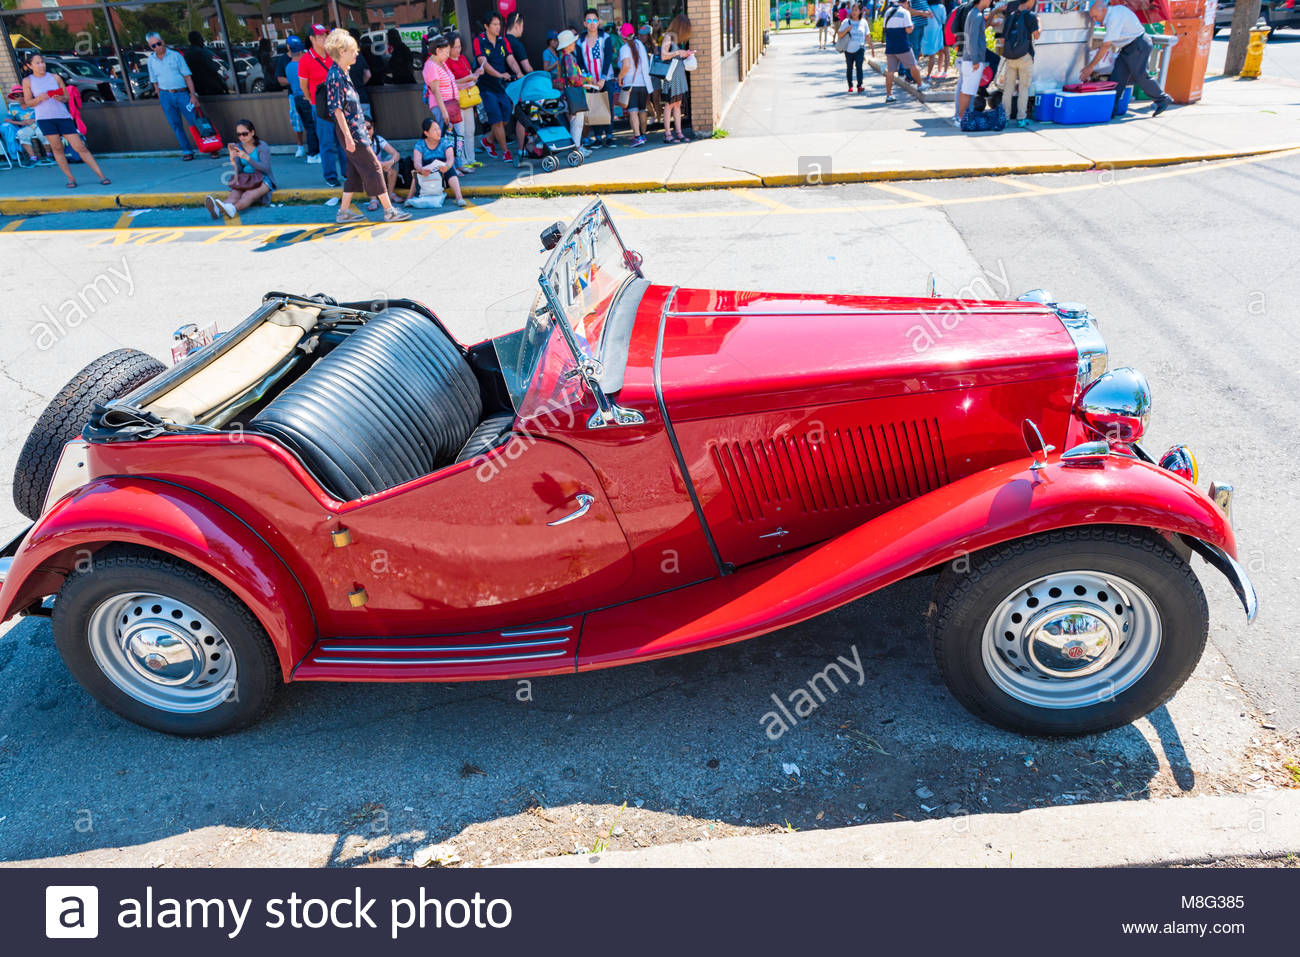 Mg Car Company Stock Photos & Mg Car Company Stock Images - Alamy